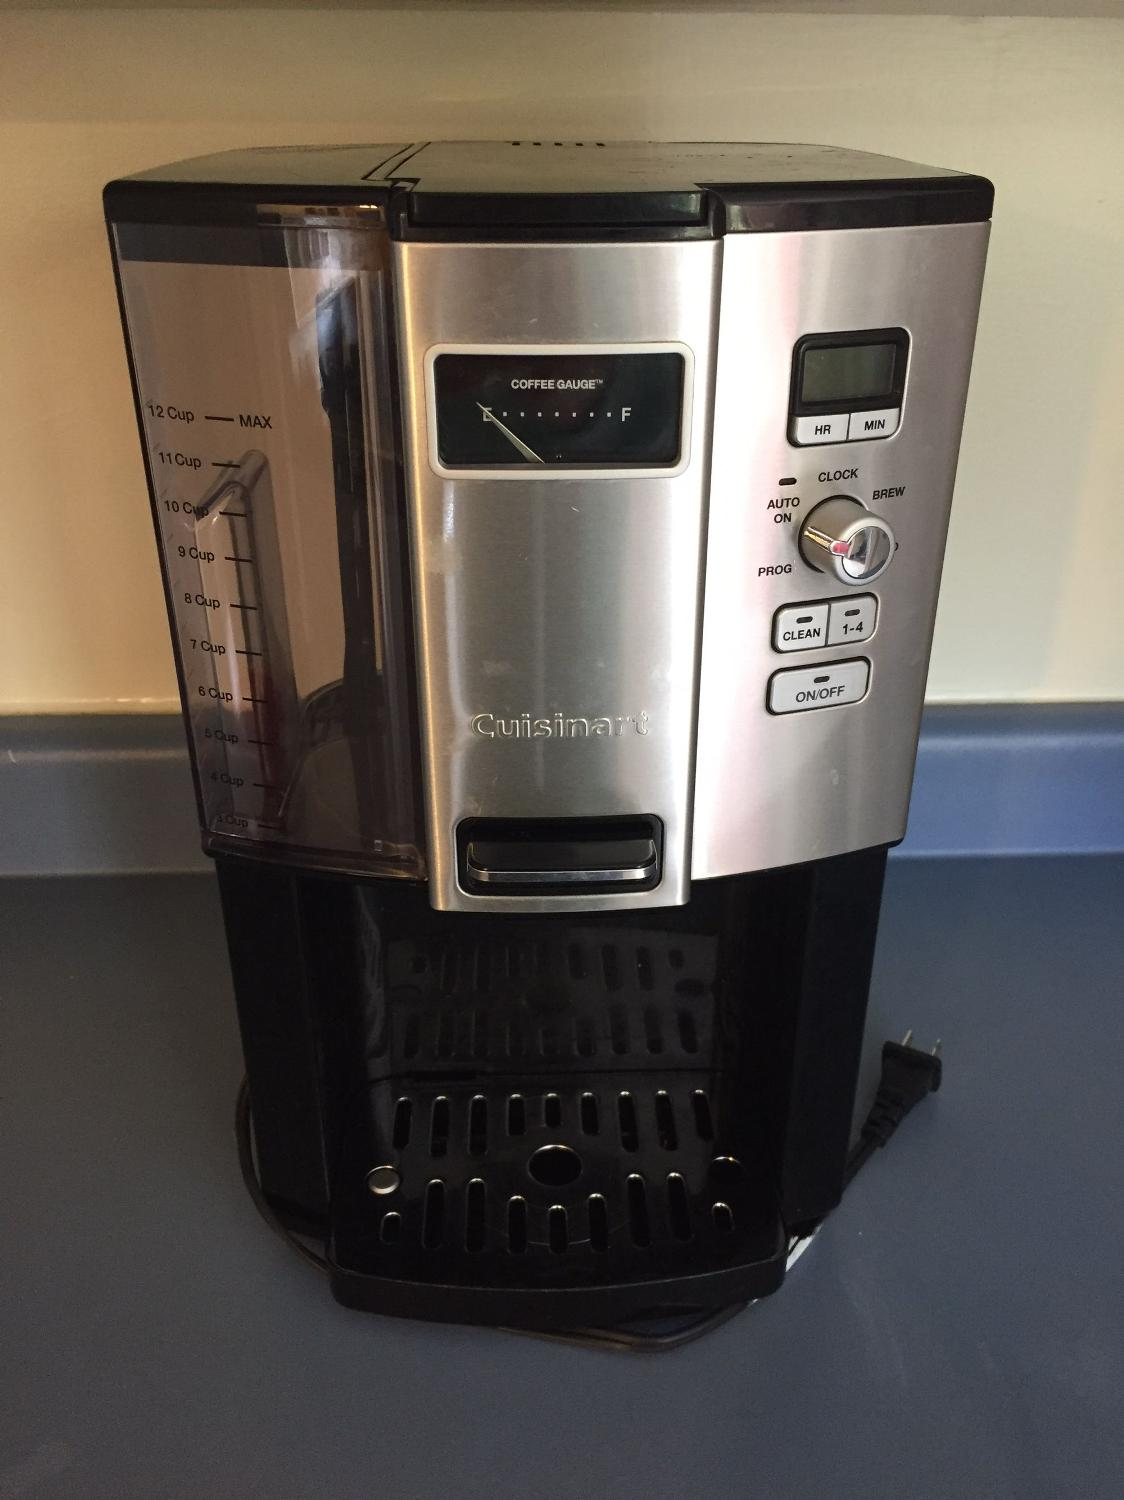 Cuisinart Coffee Maker Filter Canadian Tire : Find more Cuisinart On-demand Coffee Maker for sale at up to 90% off - Victoria, BC